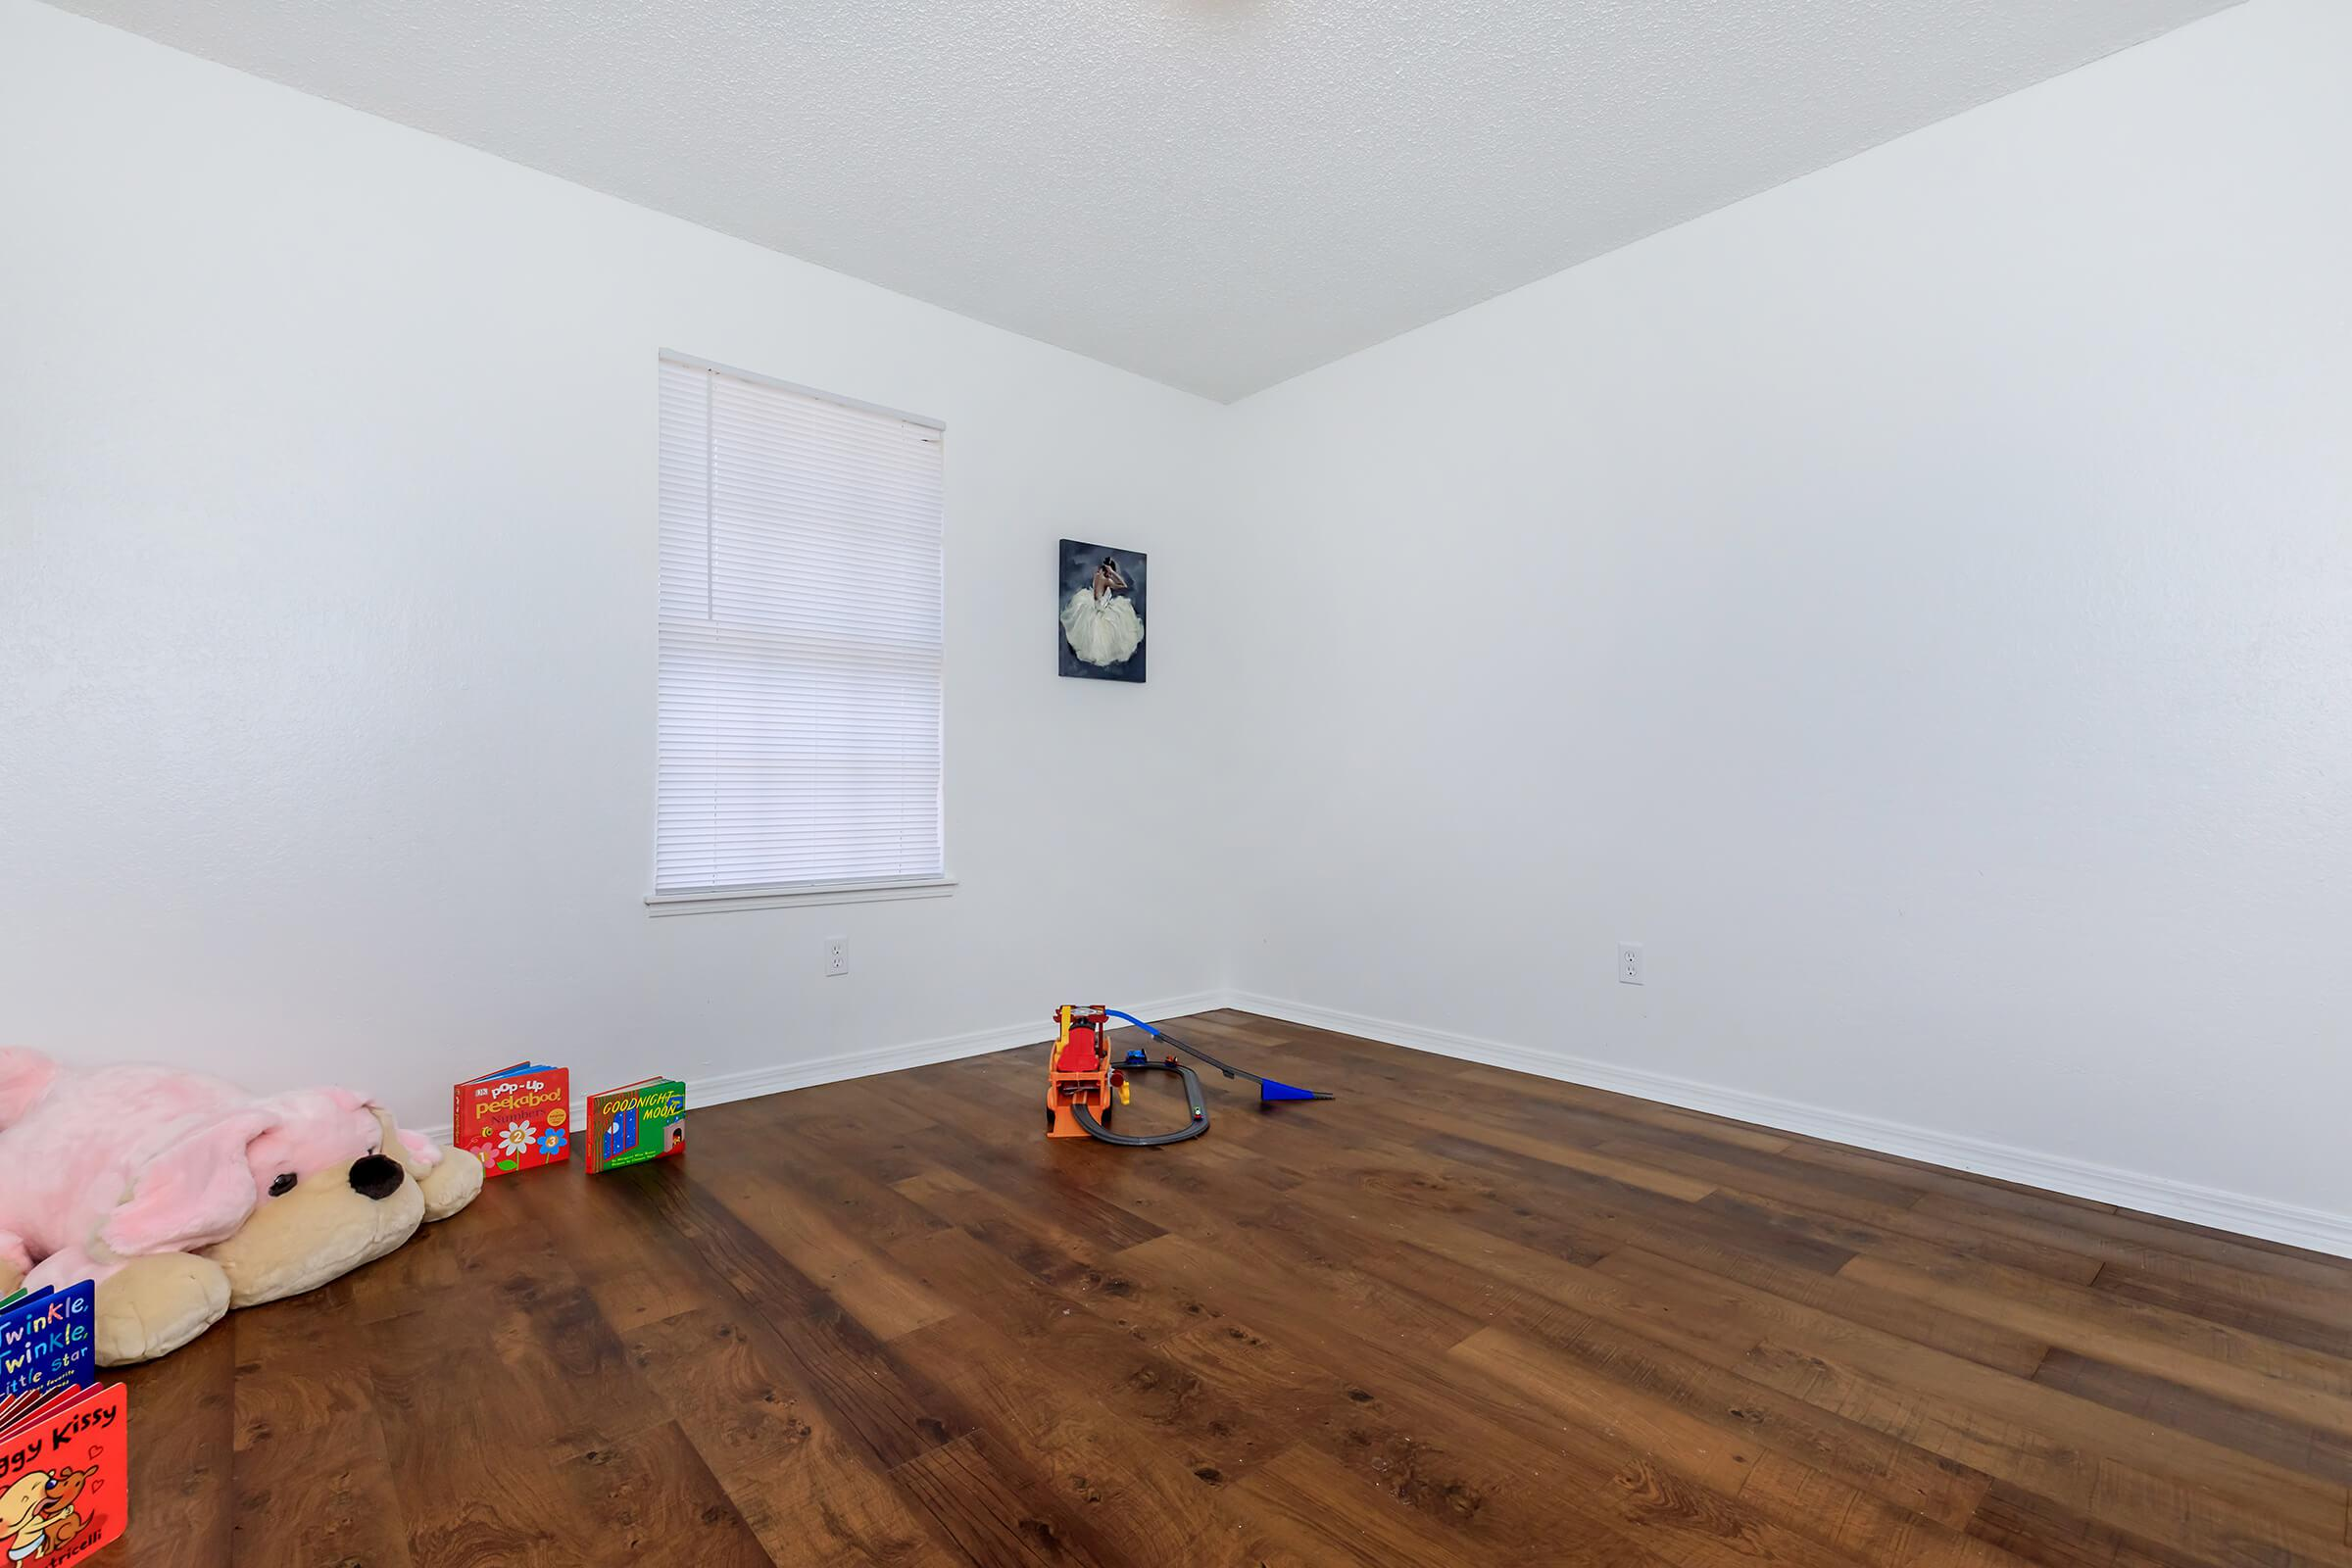 a group of stuffed animals in a room